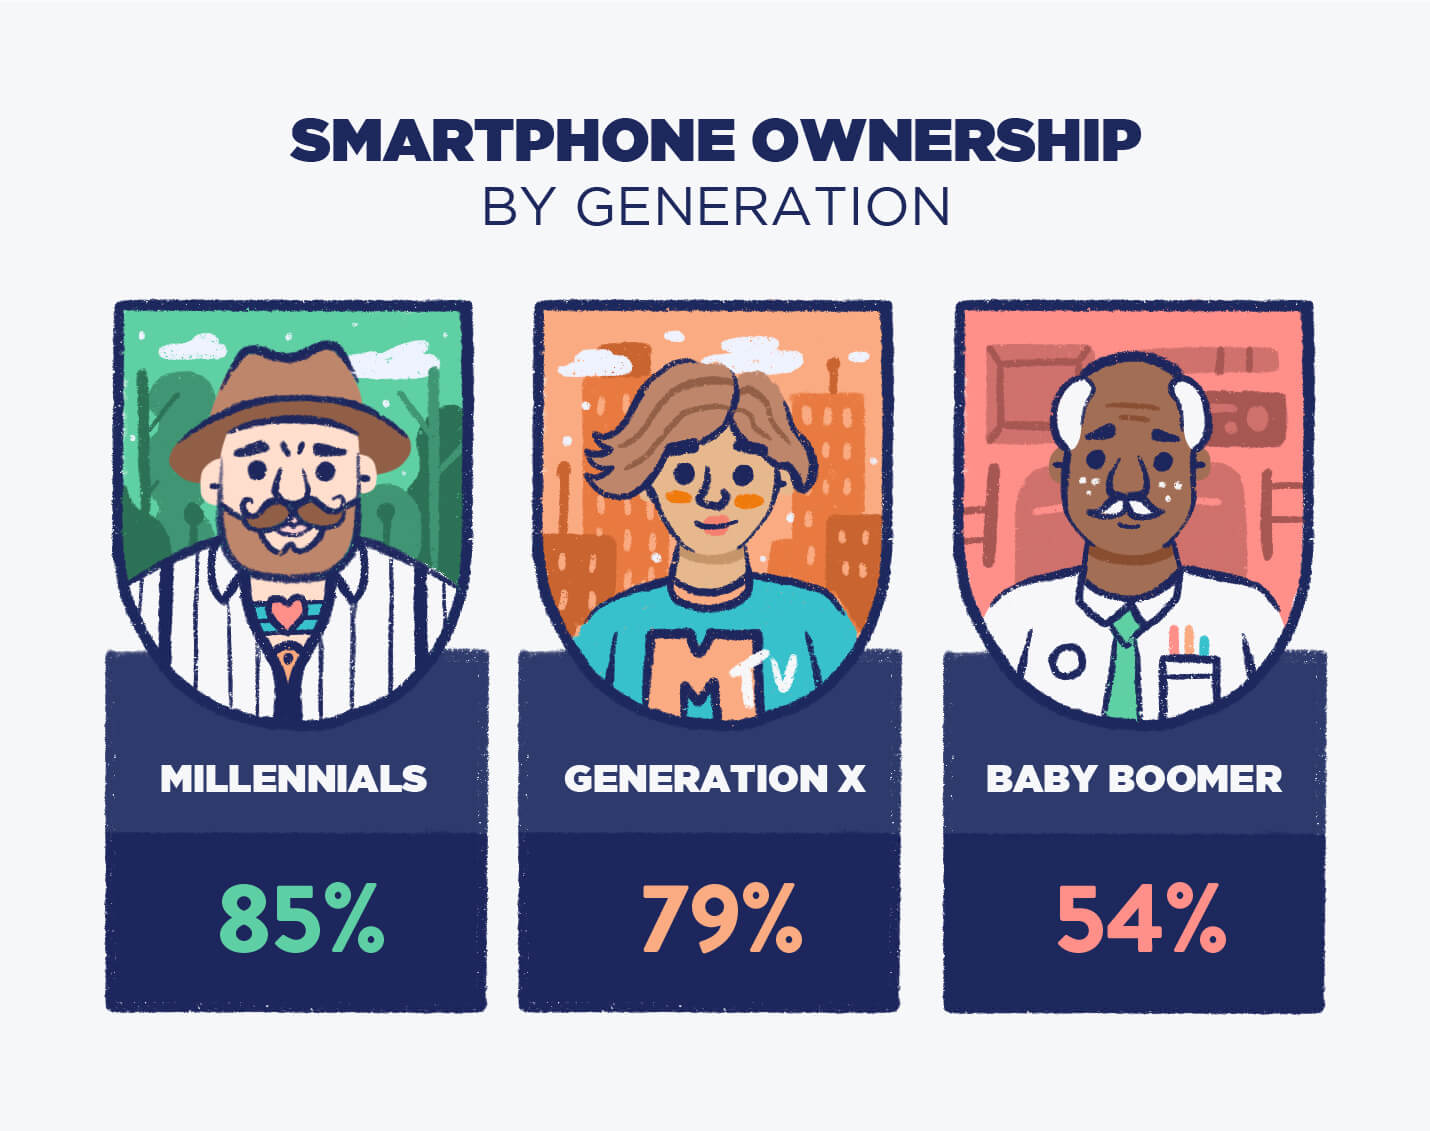 millennials own more smartphones than gen X and Baby boomers